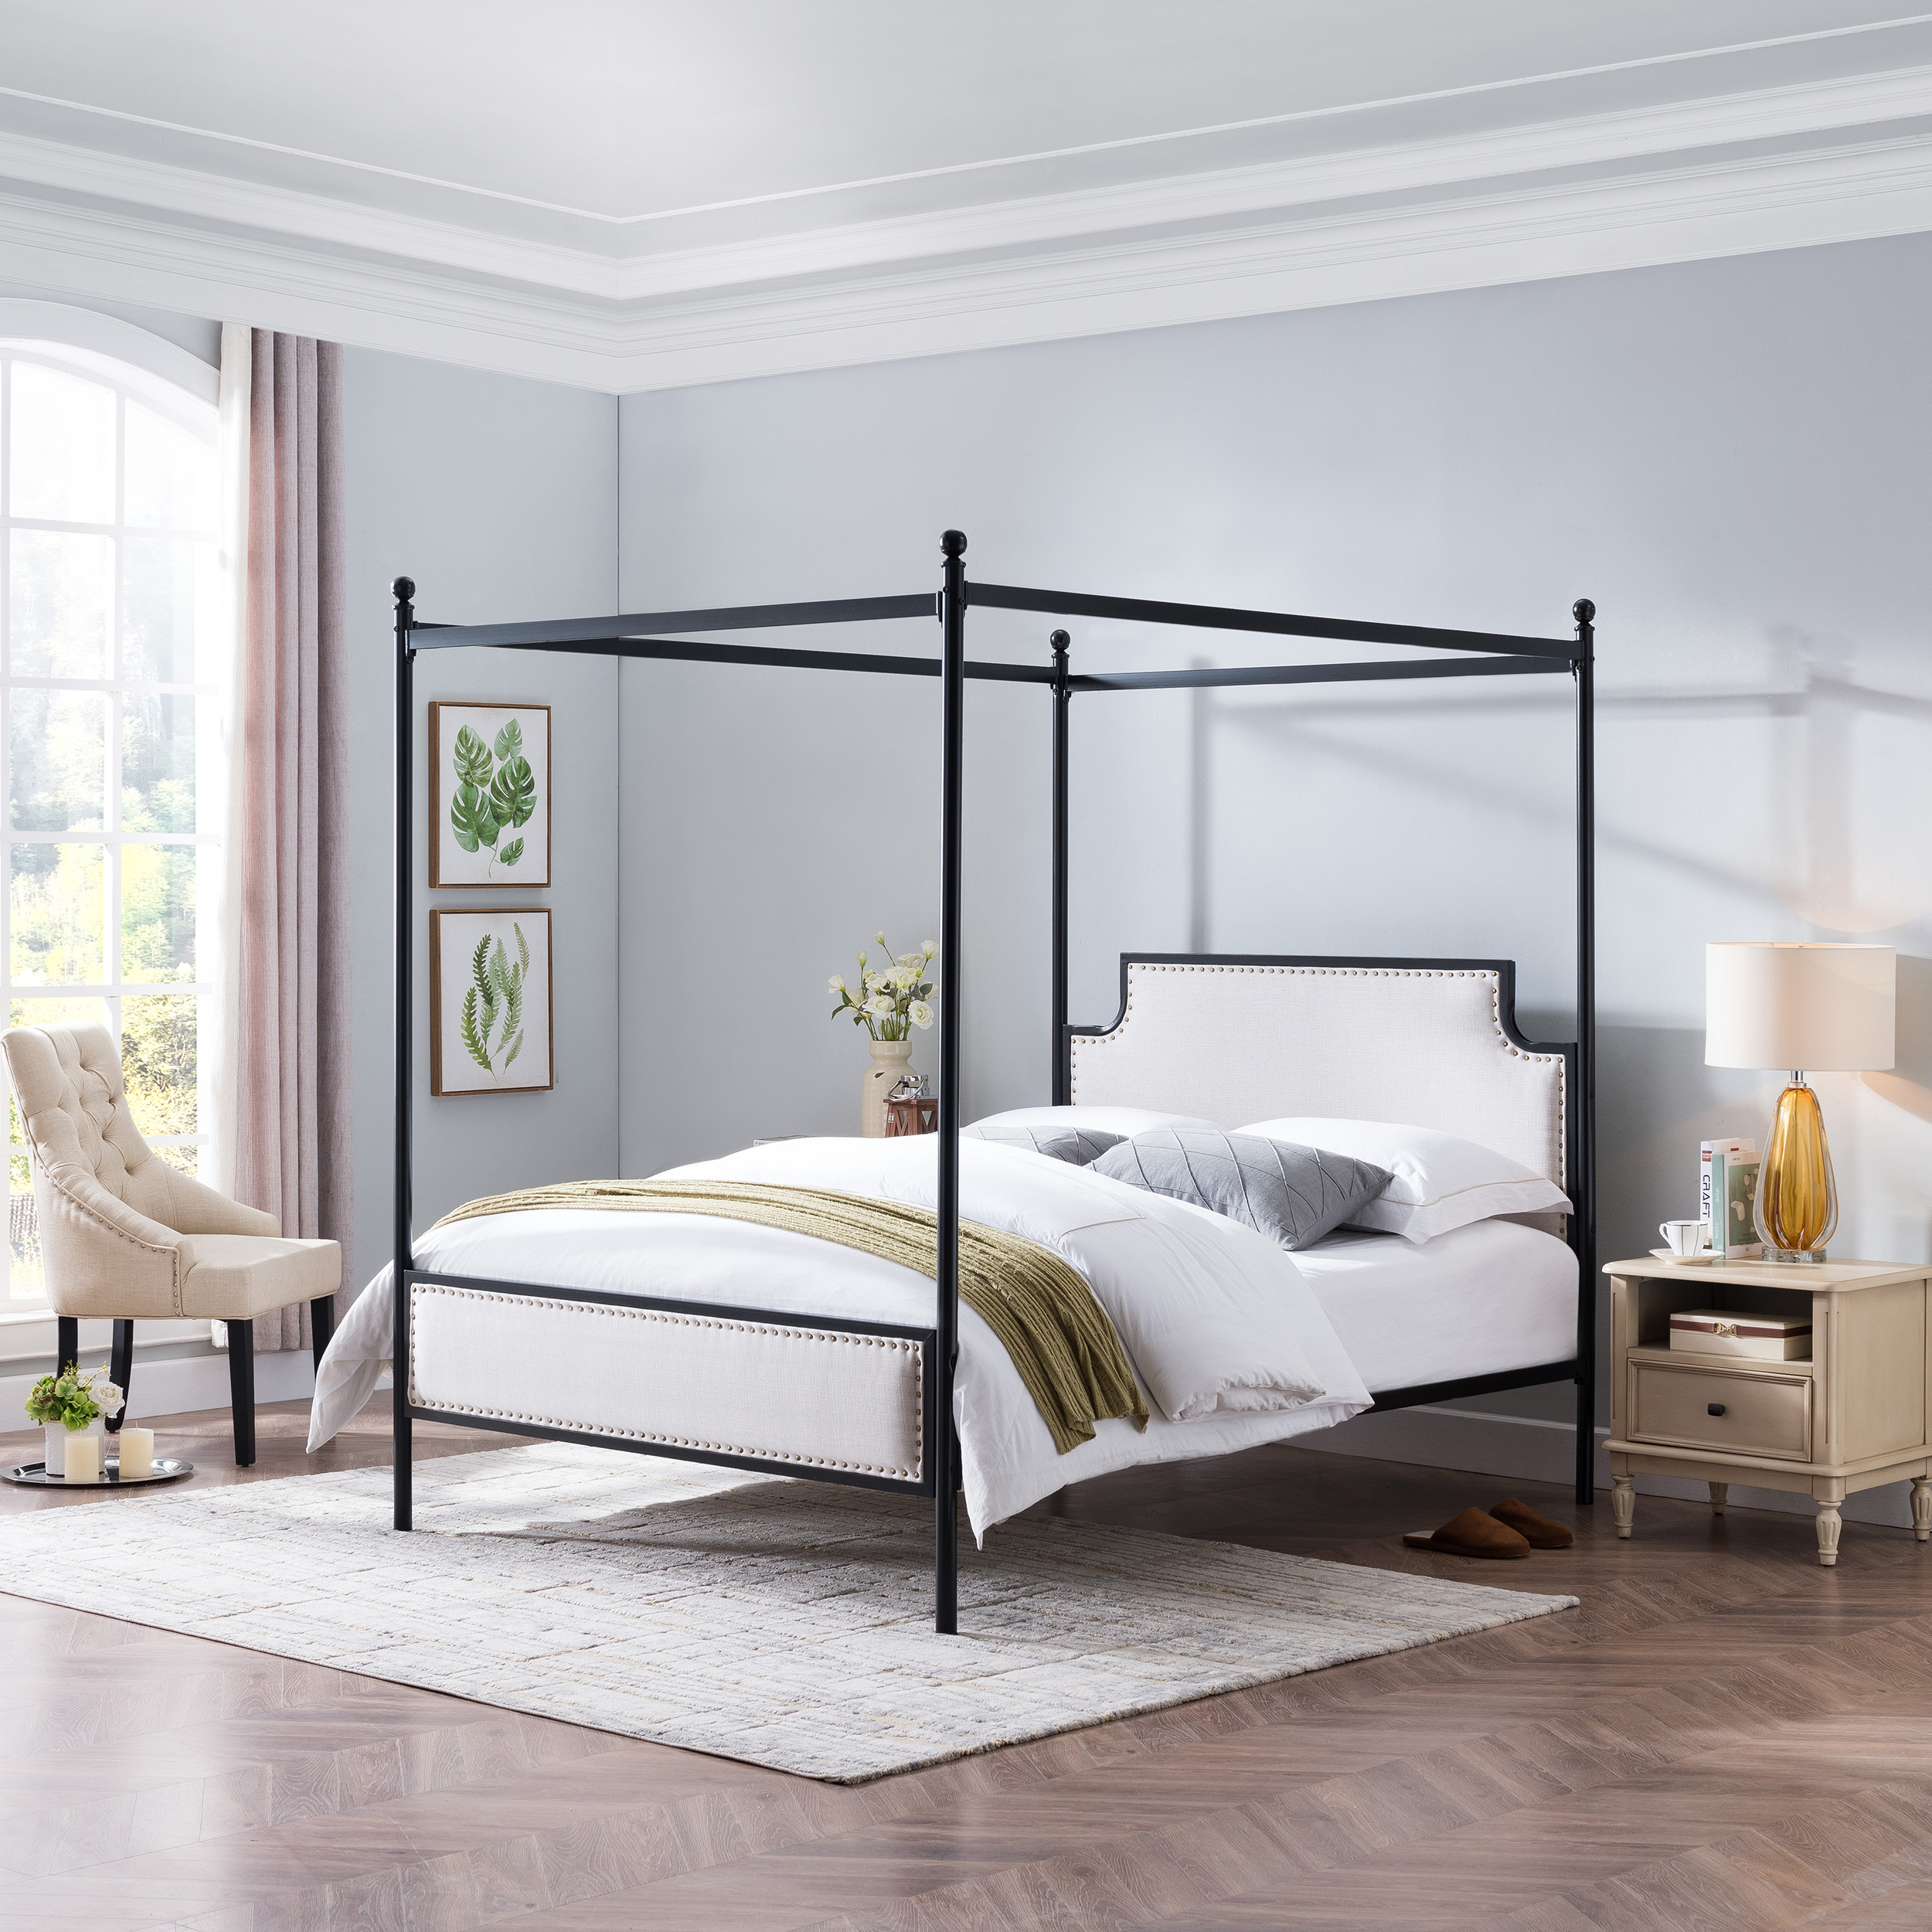 - Asa Queen Size Iron Canopy Bed Frame With Upholstered Studded